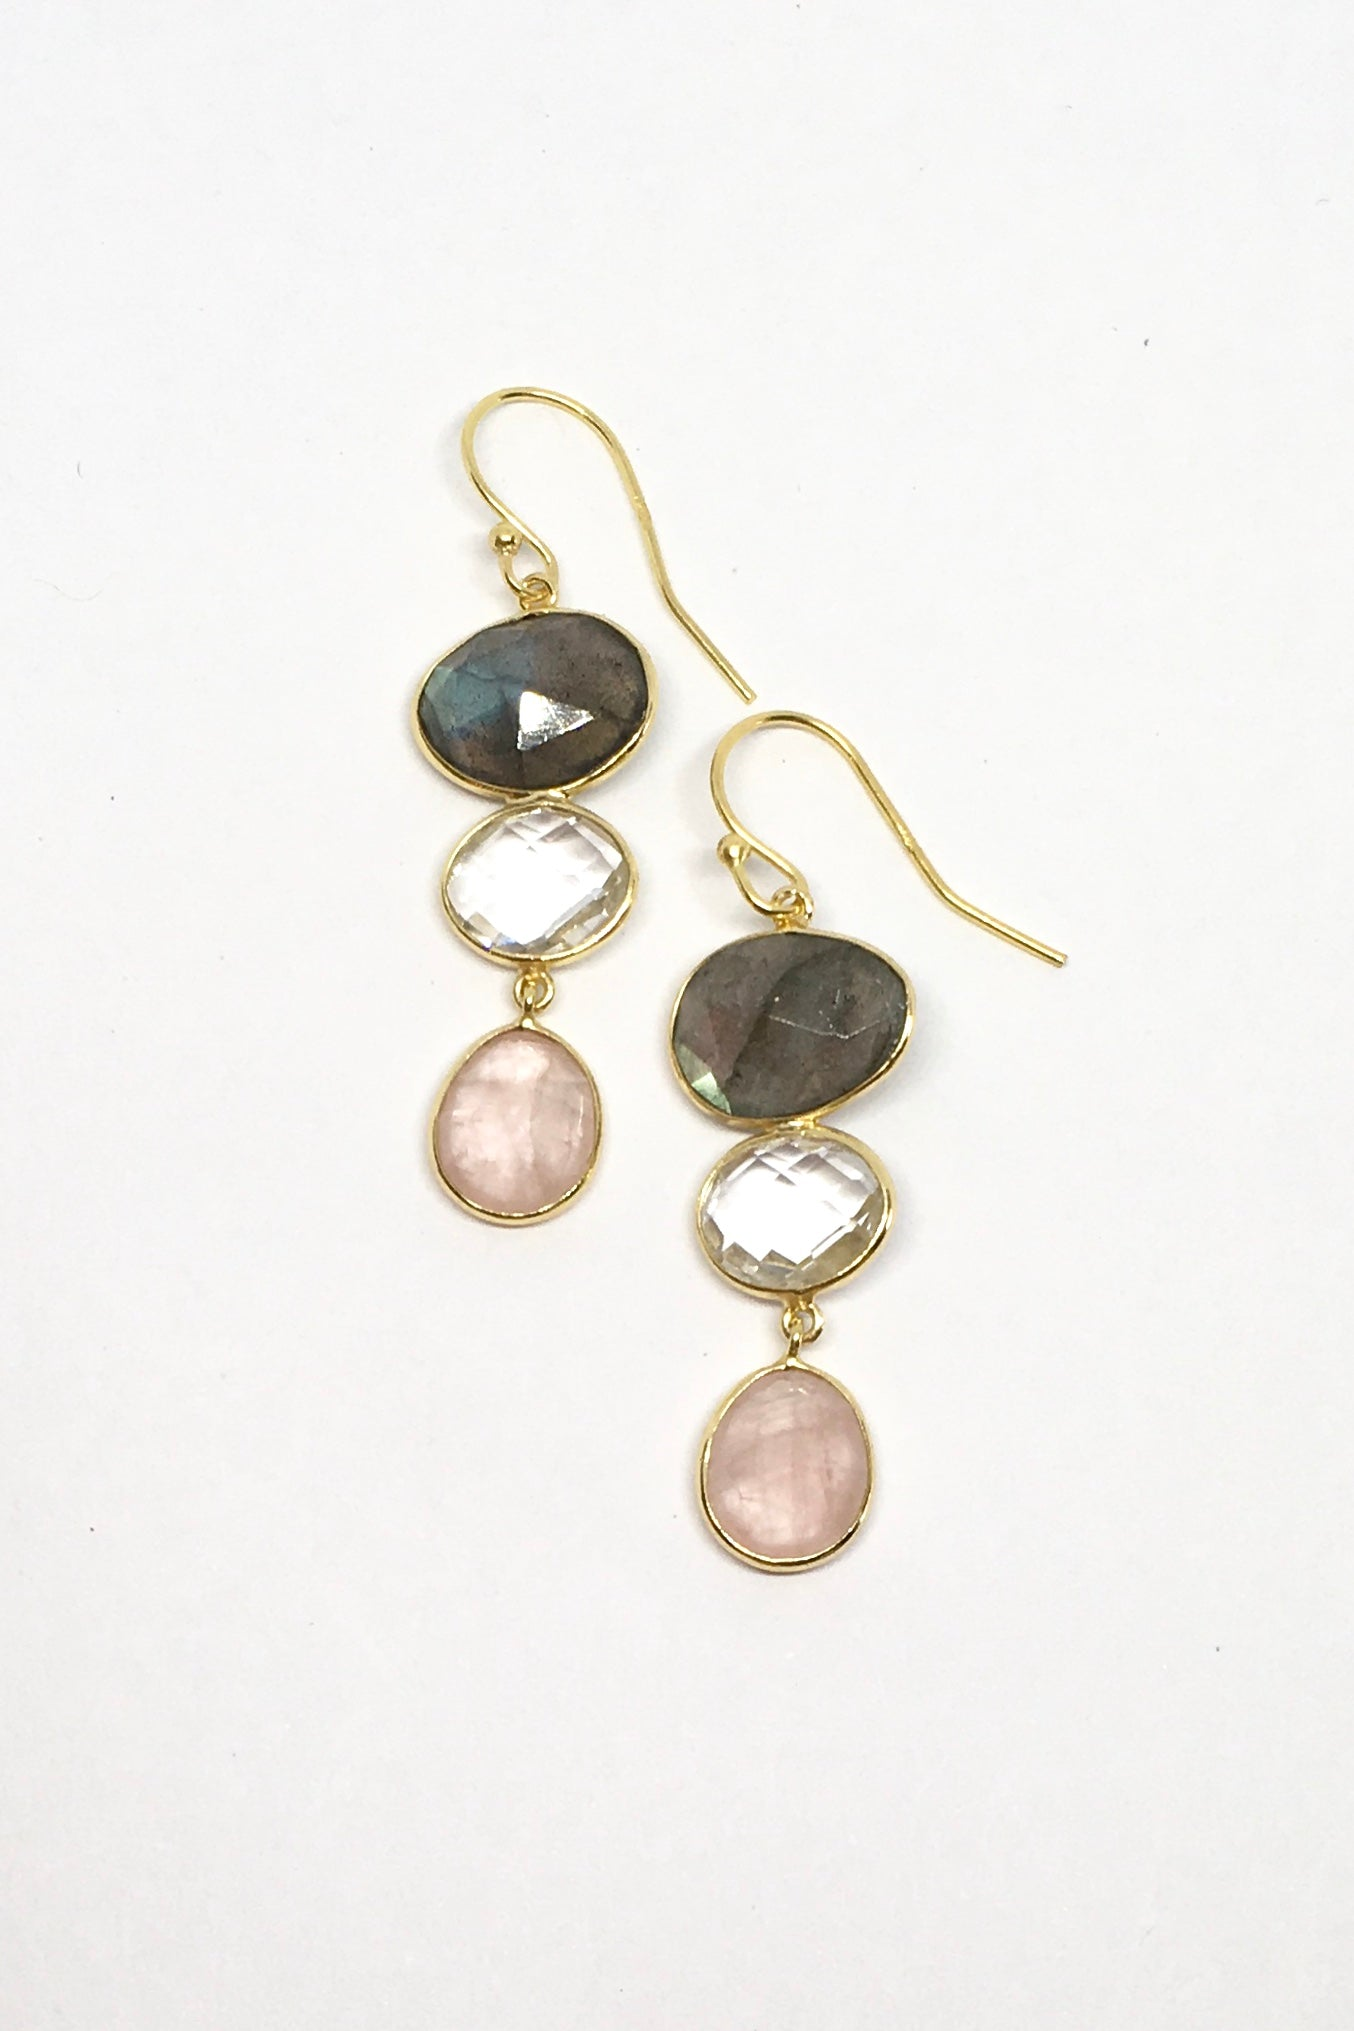 A modern bohemian inspired design of smokey toned crystal stones incased in gold vermeil